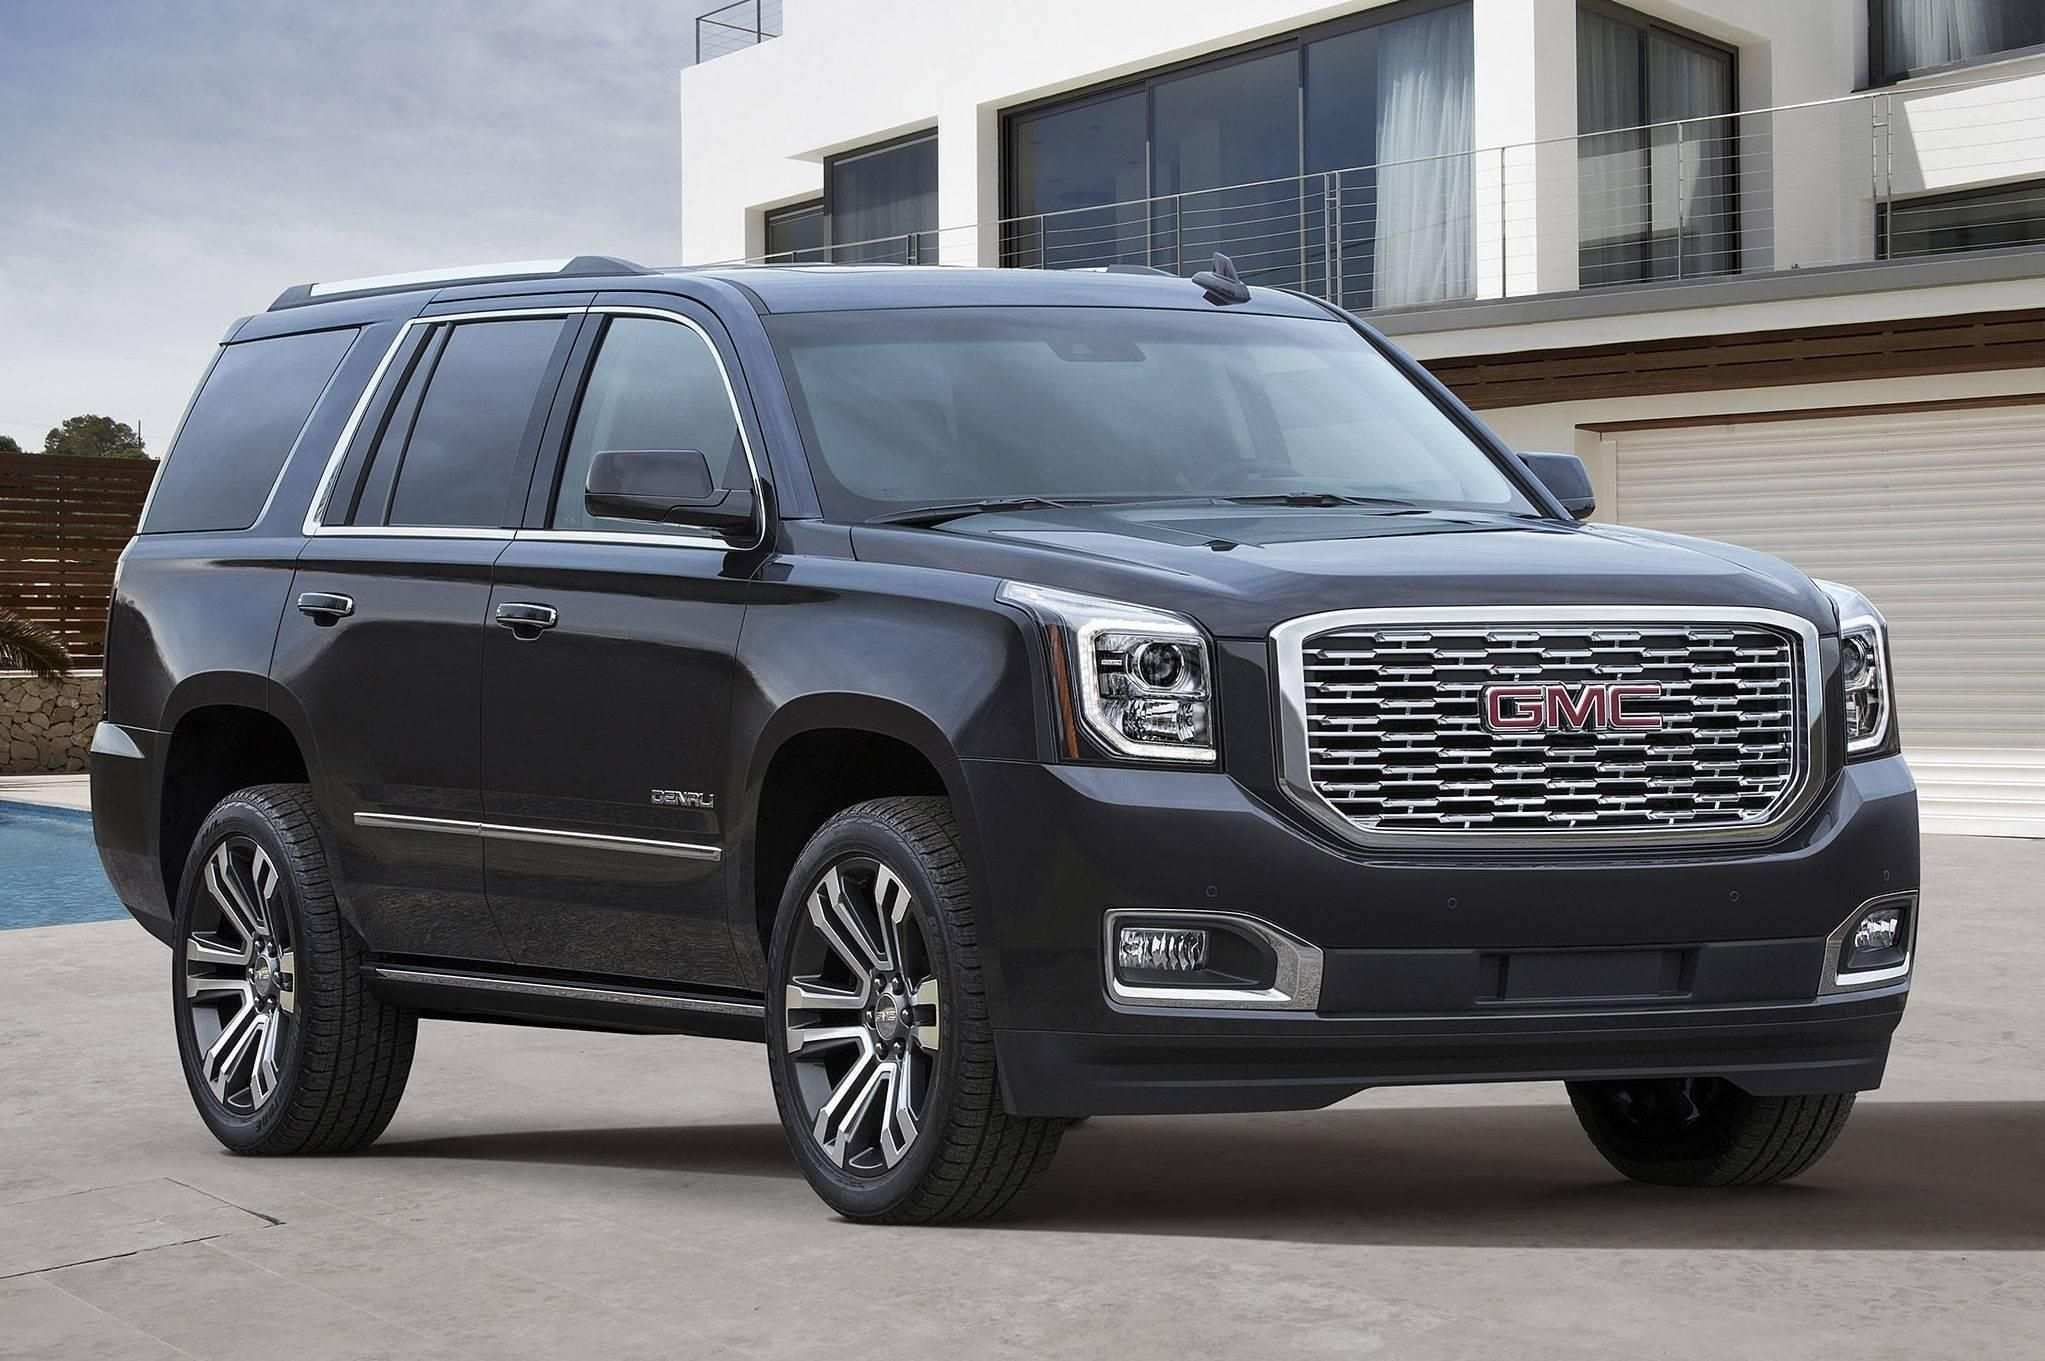 33 The 2019 GMC Envoy Price Design And Review